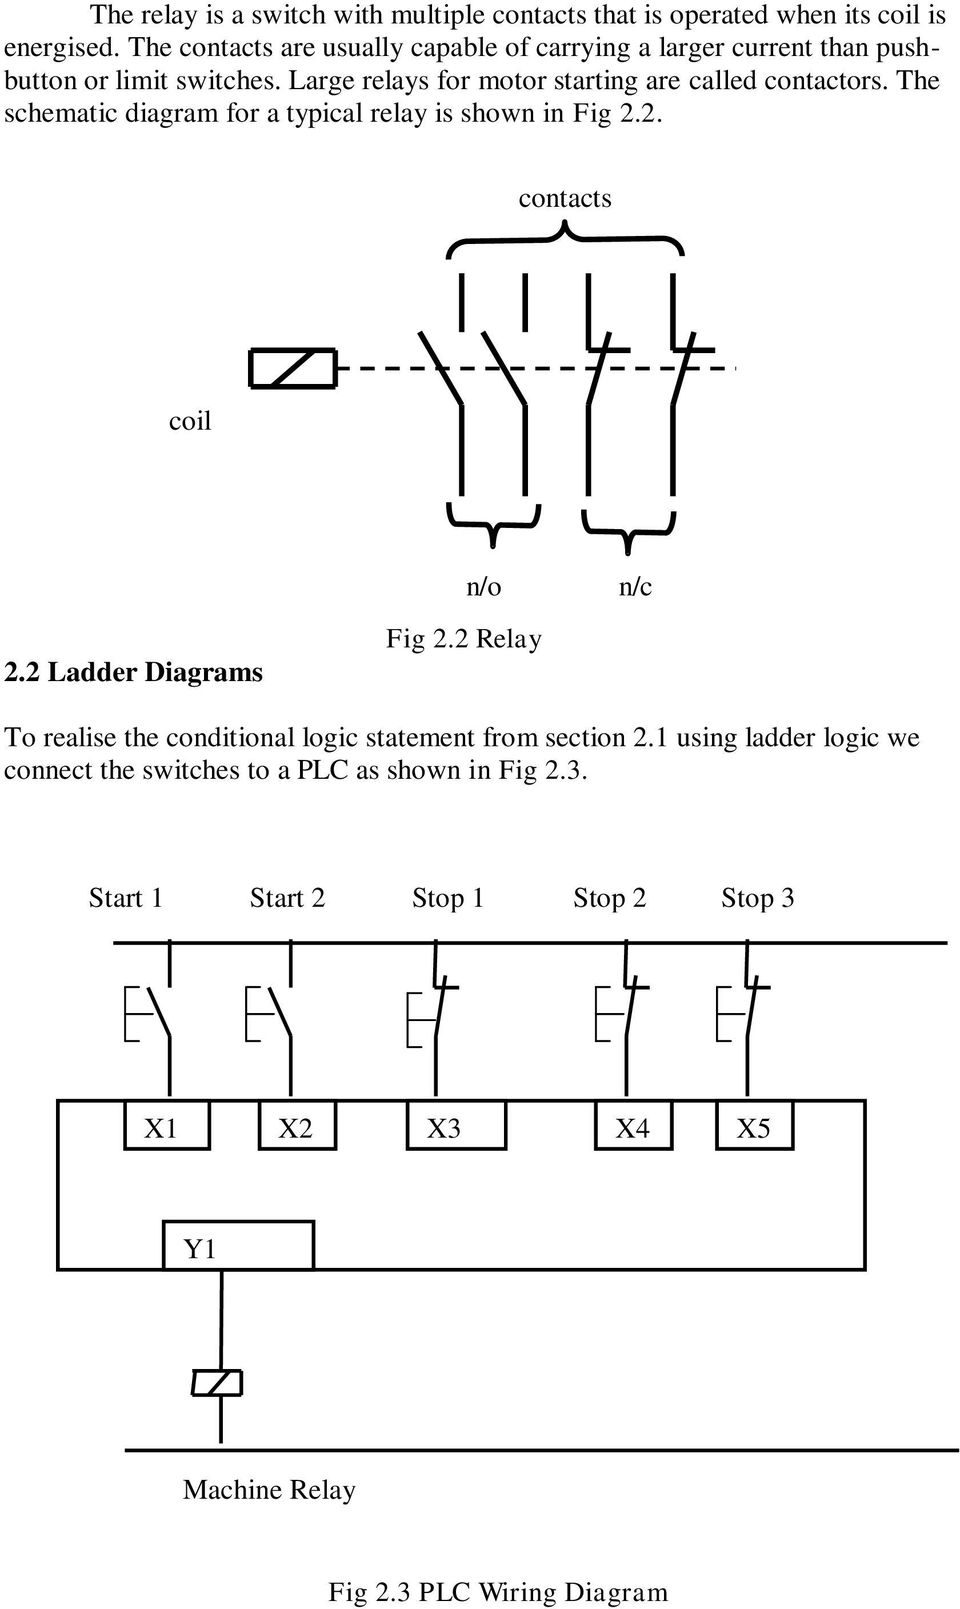 medium resolution of large relays for motor starting are called contactors the schematic diagram for a typical relay